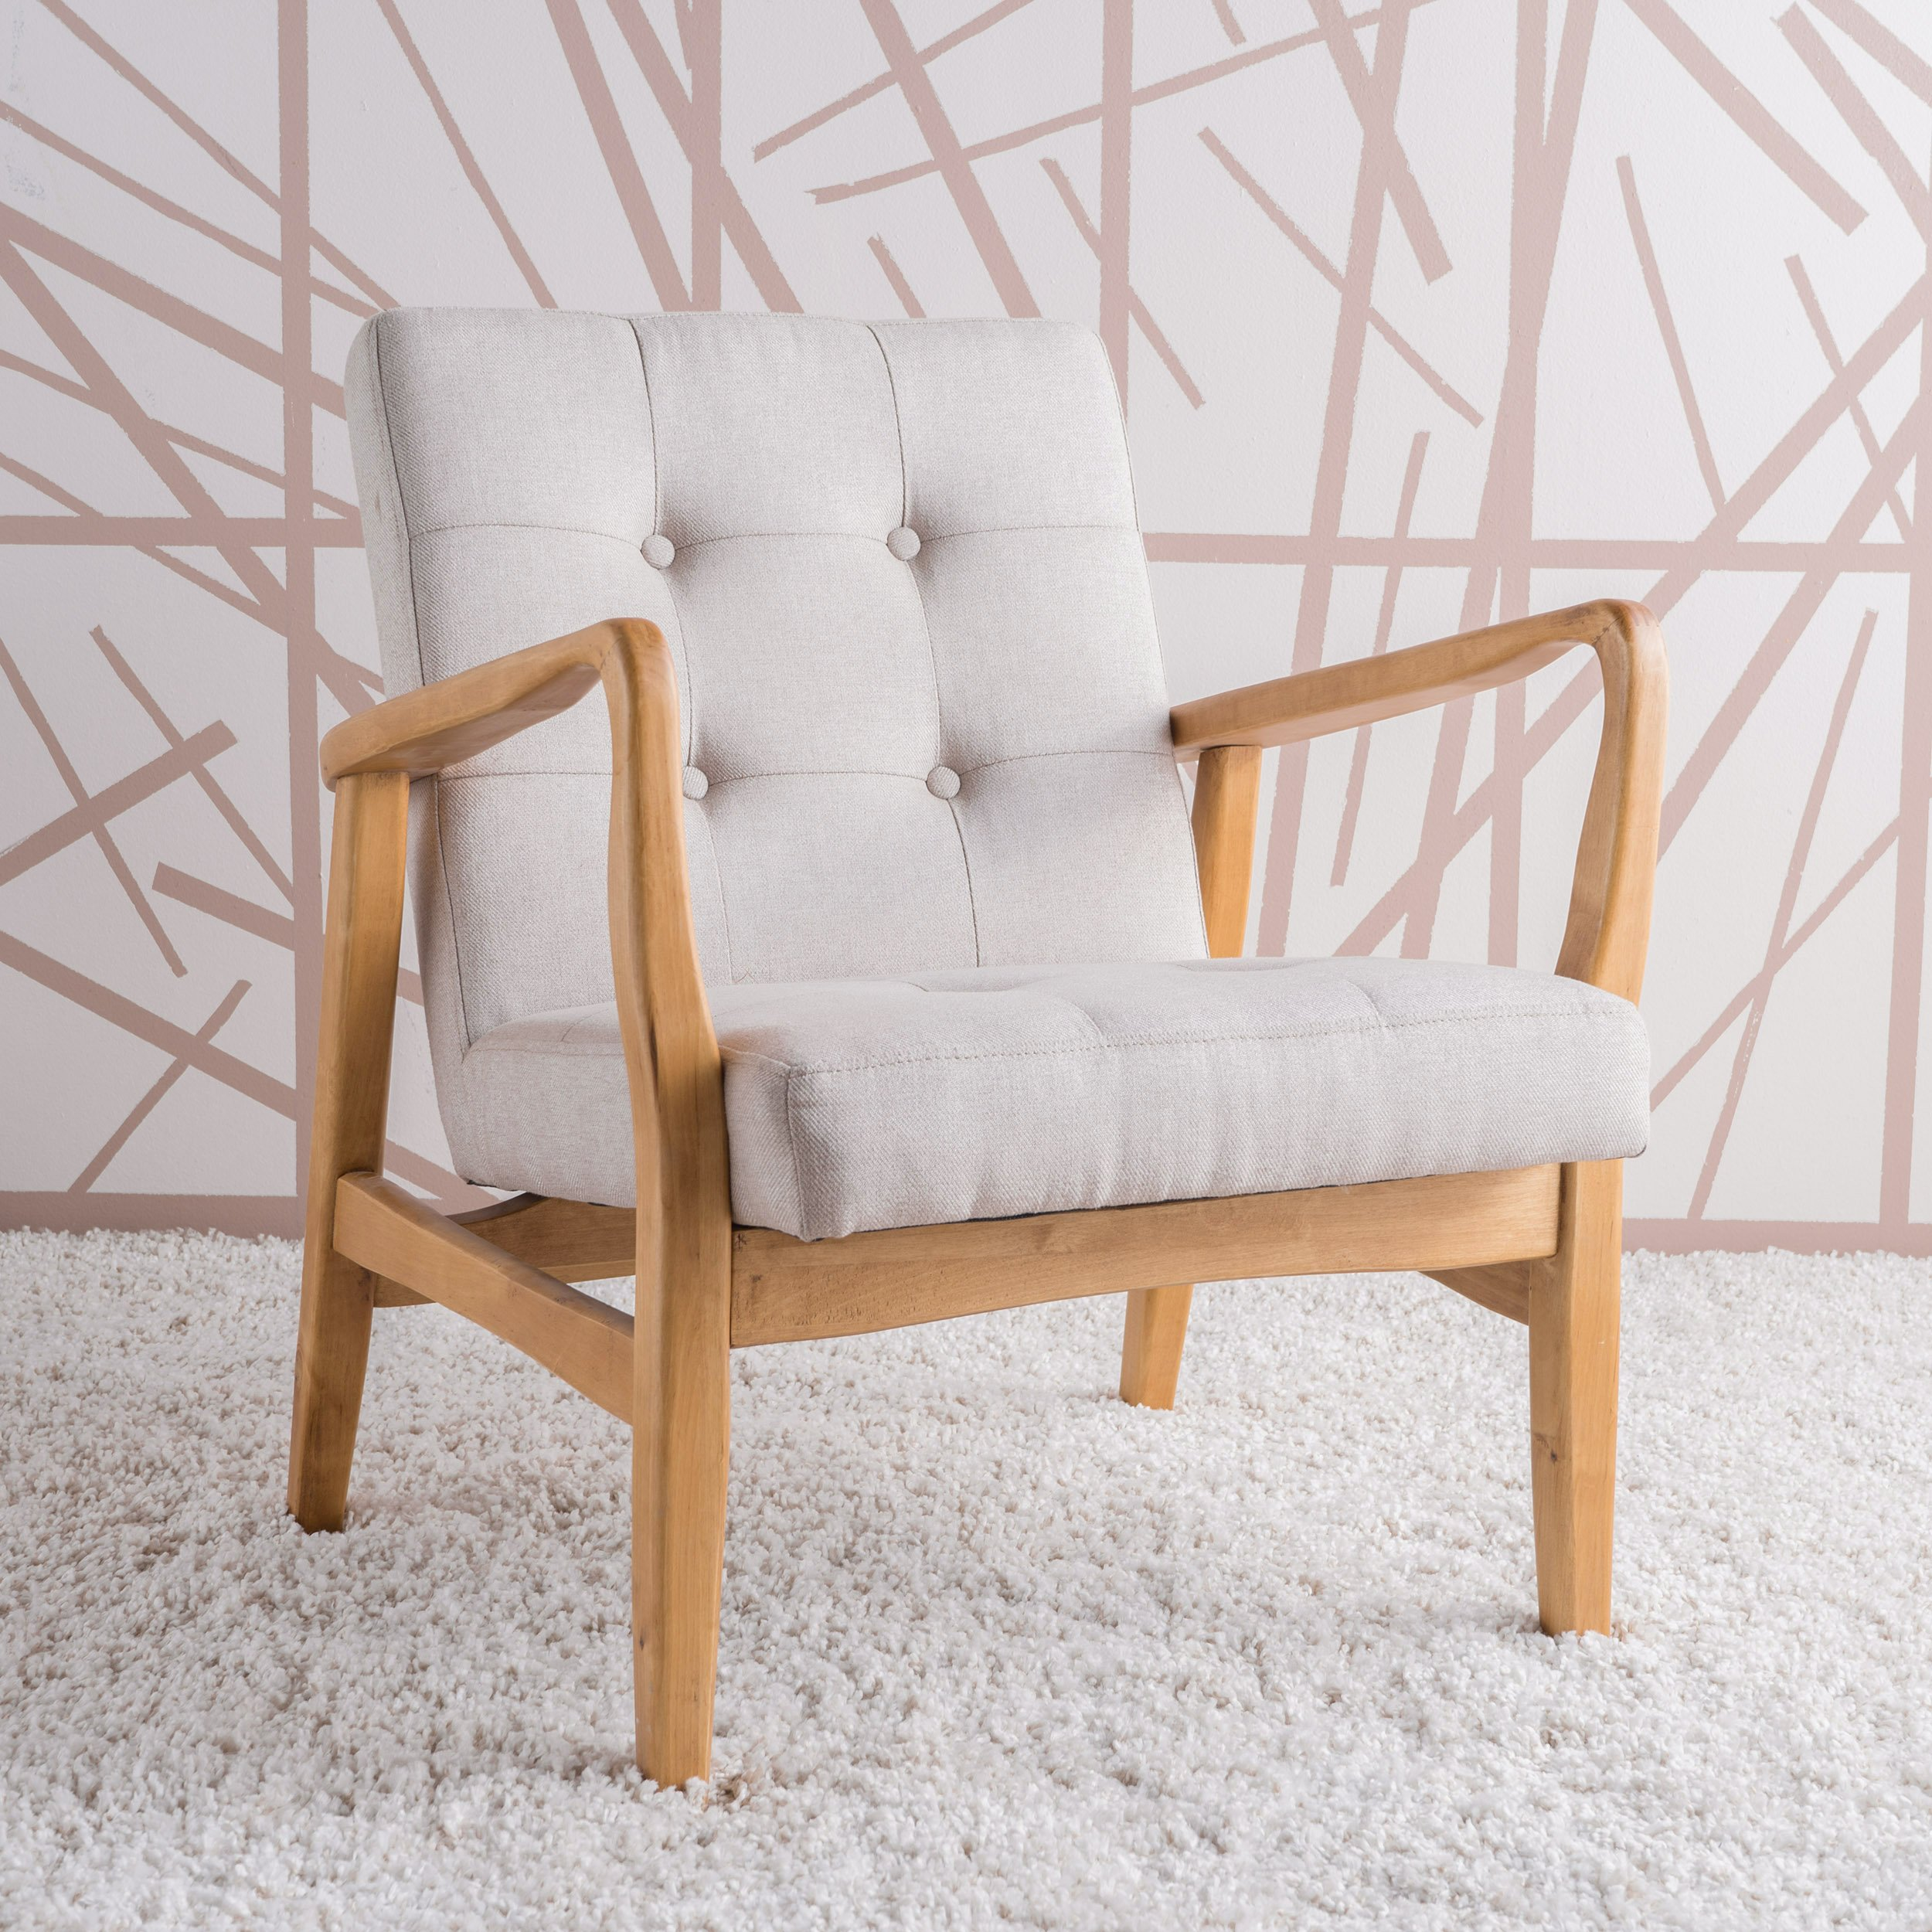 Christopher Knight Home Conrad Medium Beige Fabric Mid Century Modern Club Chair by Christopher Knight Home